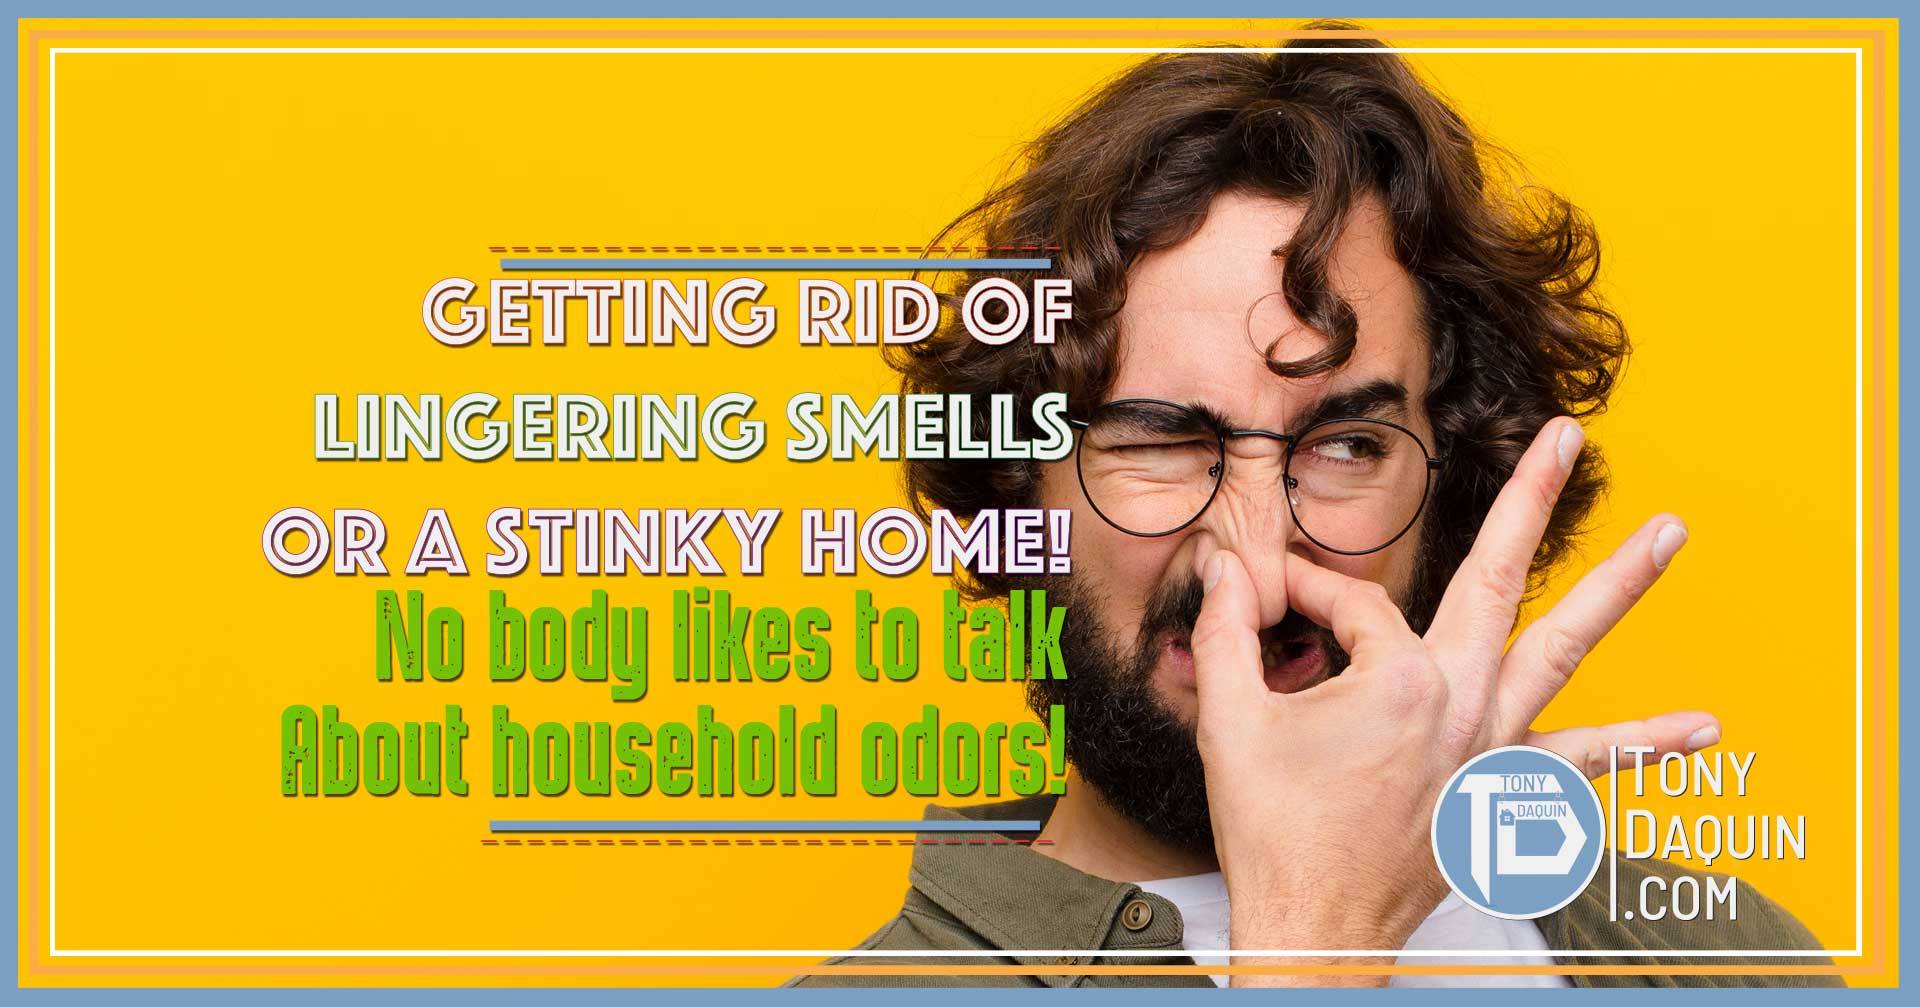 Getting rid of lingering smells or a stinky home